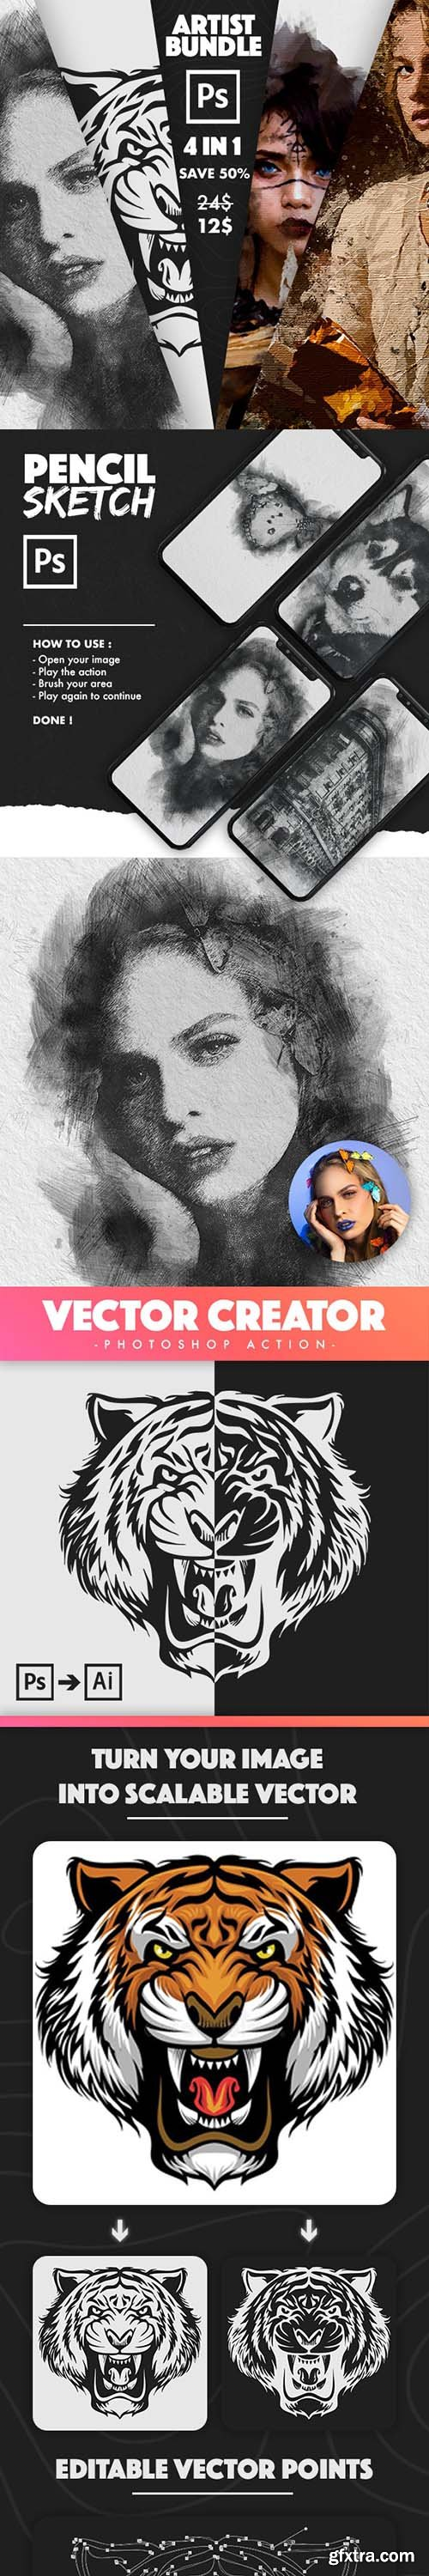 GraphicRiver - 4 in 1 Artist Bundle Photoshop Actions 31038403